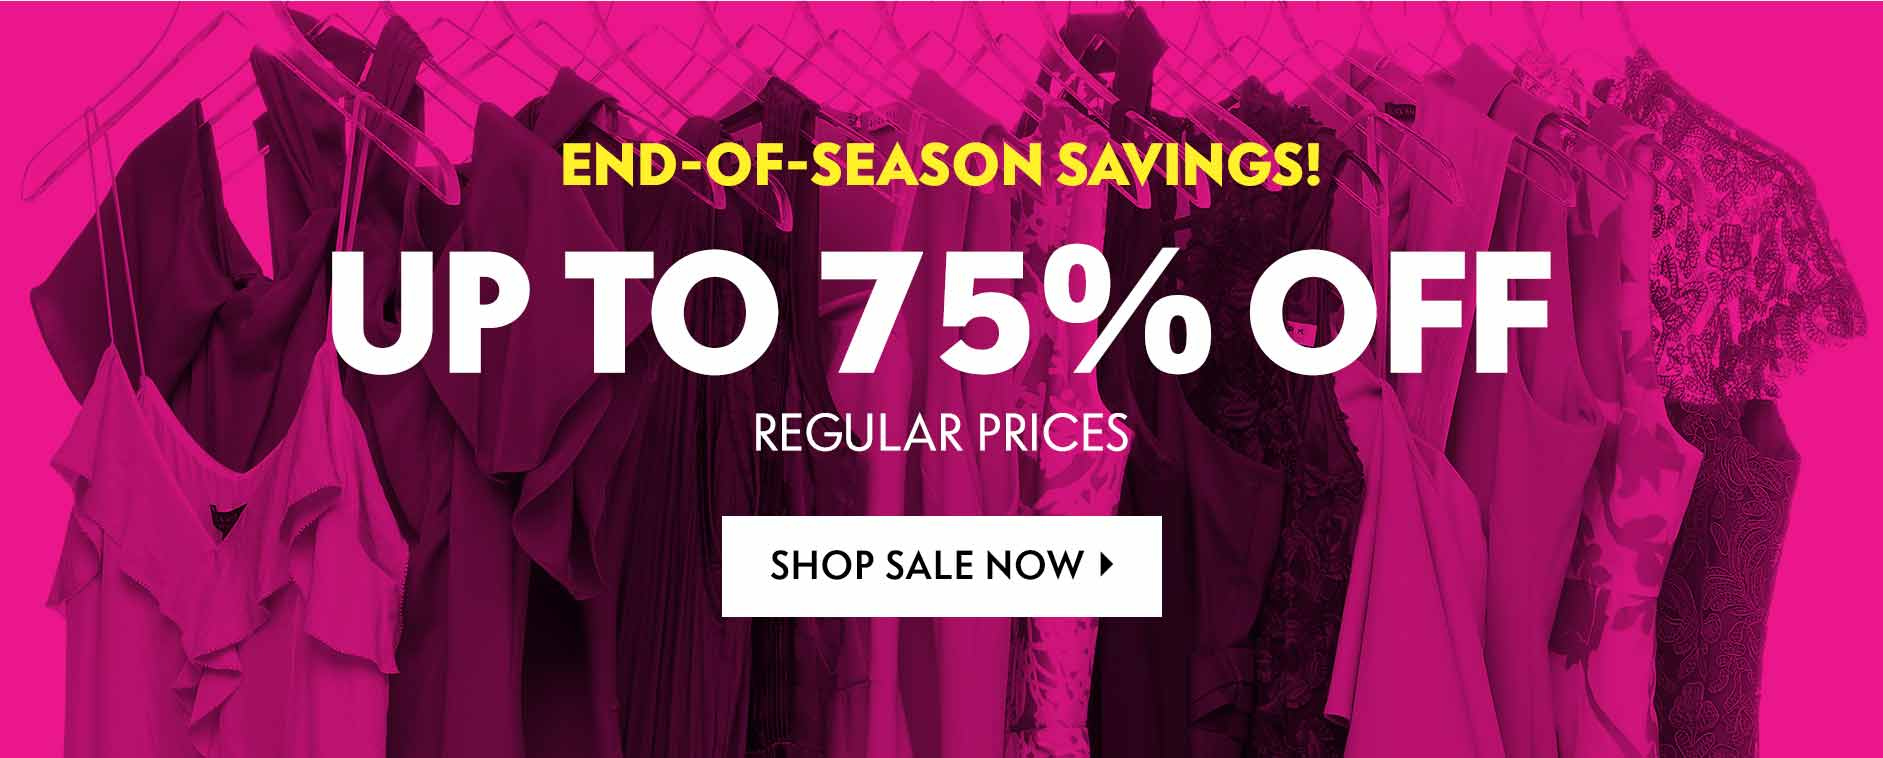 Up to 75% off regular prices